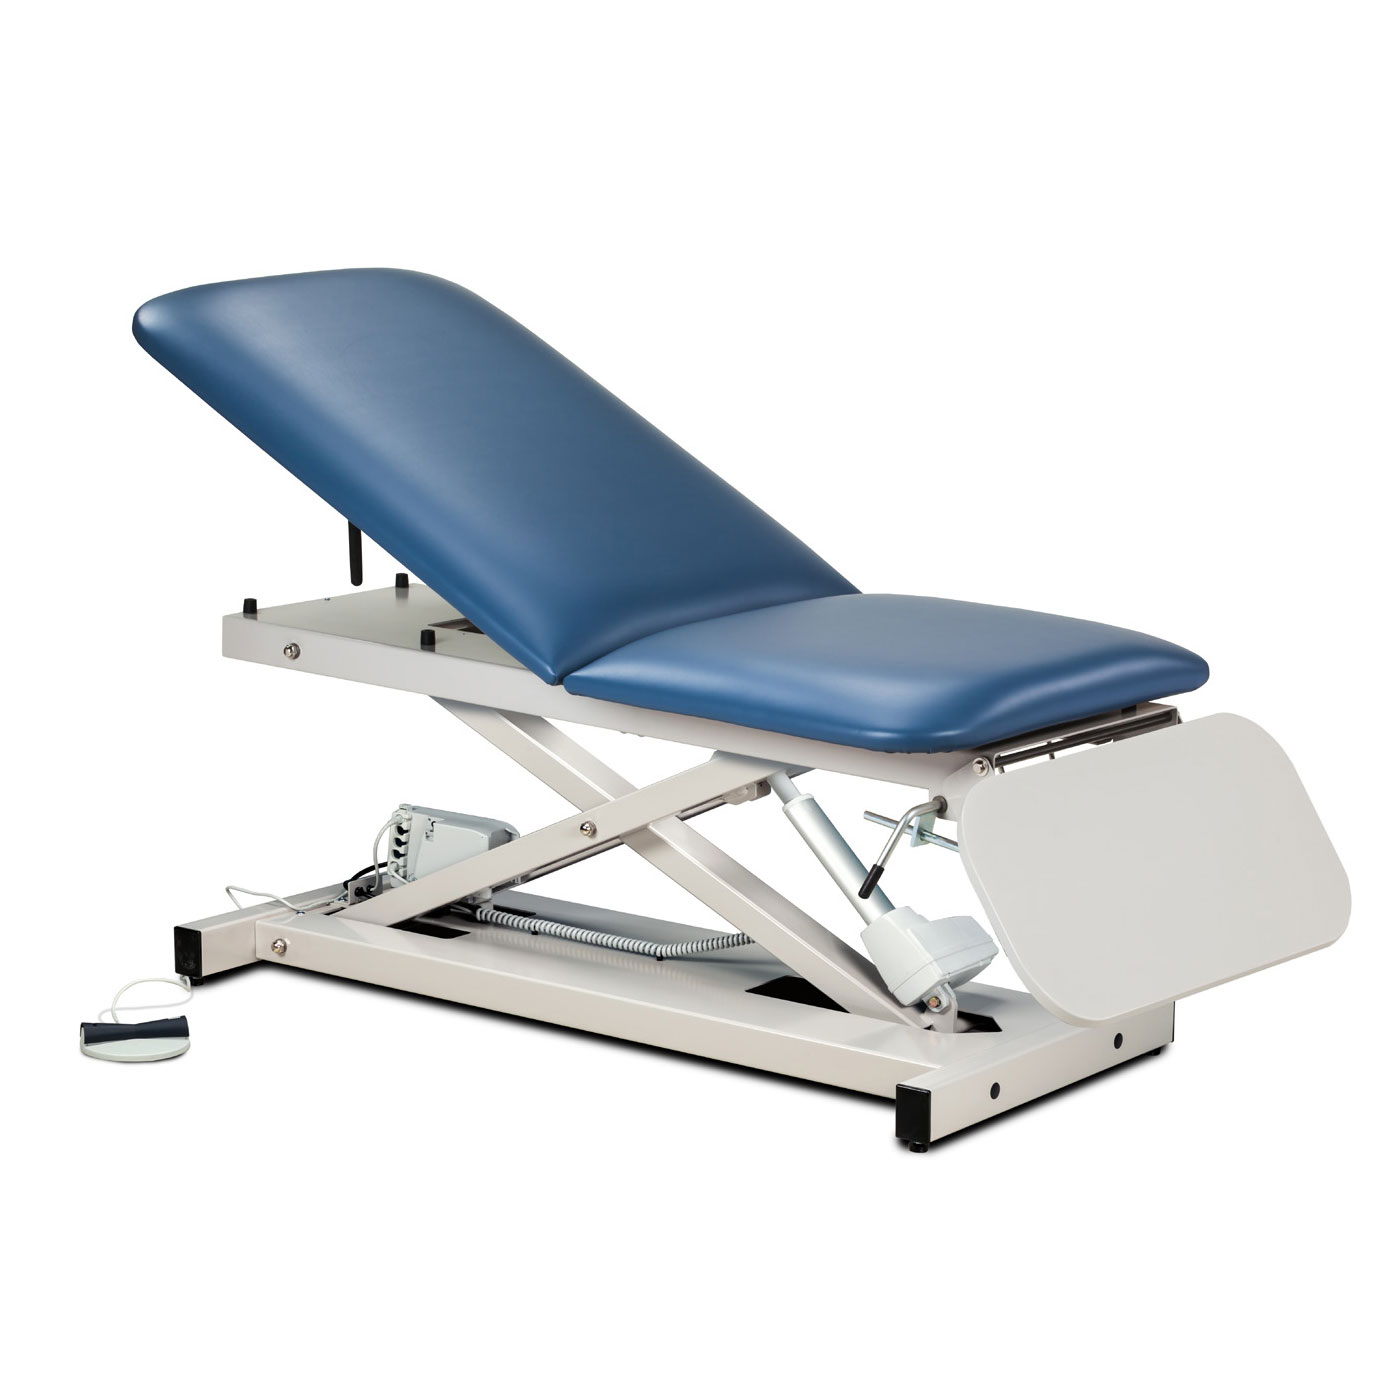 Clinton open base power casting table with ClintonClean leg rest